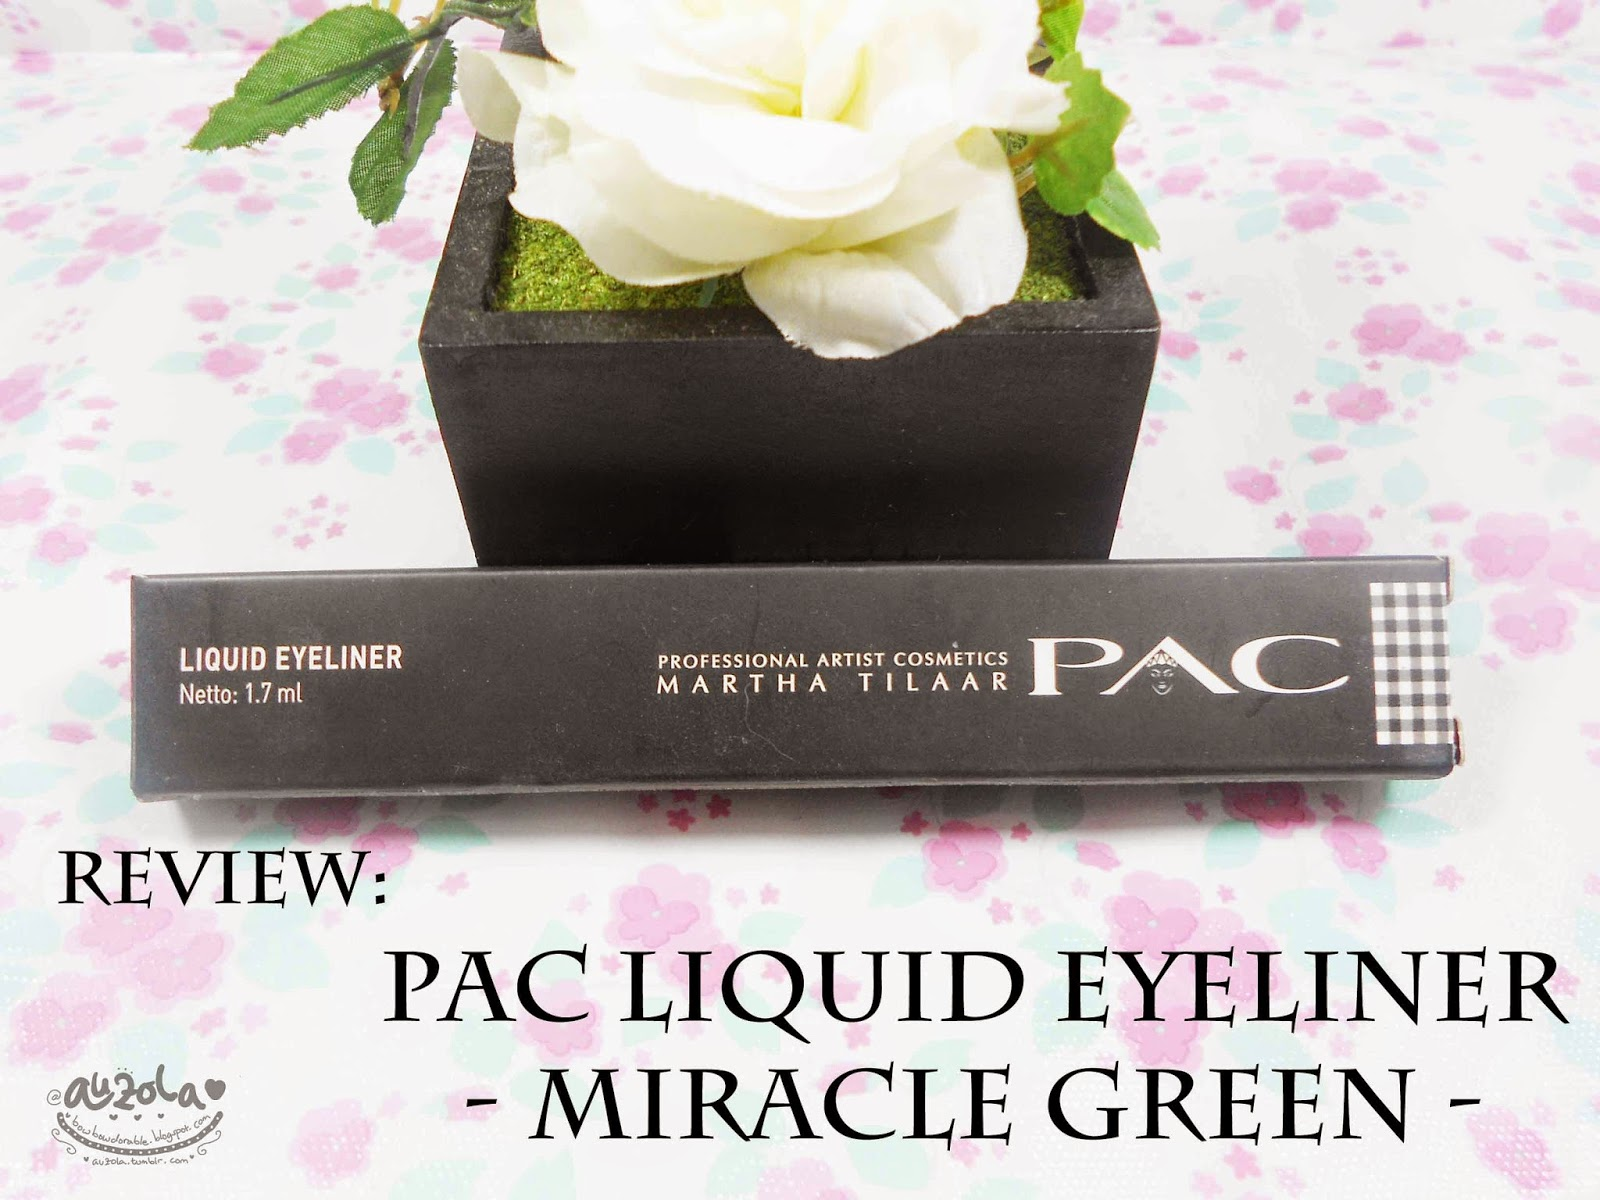 Rainbowdorable By Auzola Indonesian Beauty Blogger Review Pac Pixy Line Shadow Eyeliner Green Name Liquid Miracle Content 17ml Made In Indonesia Price About Idr 190k Around Usd19 Based On Store